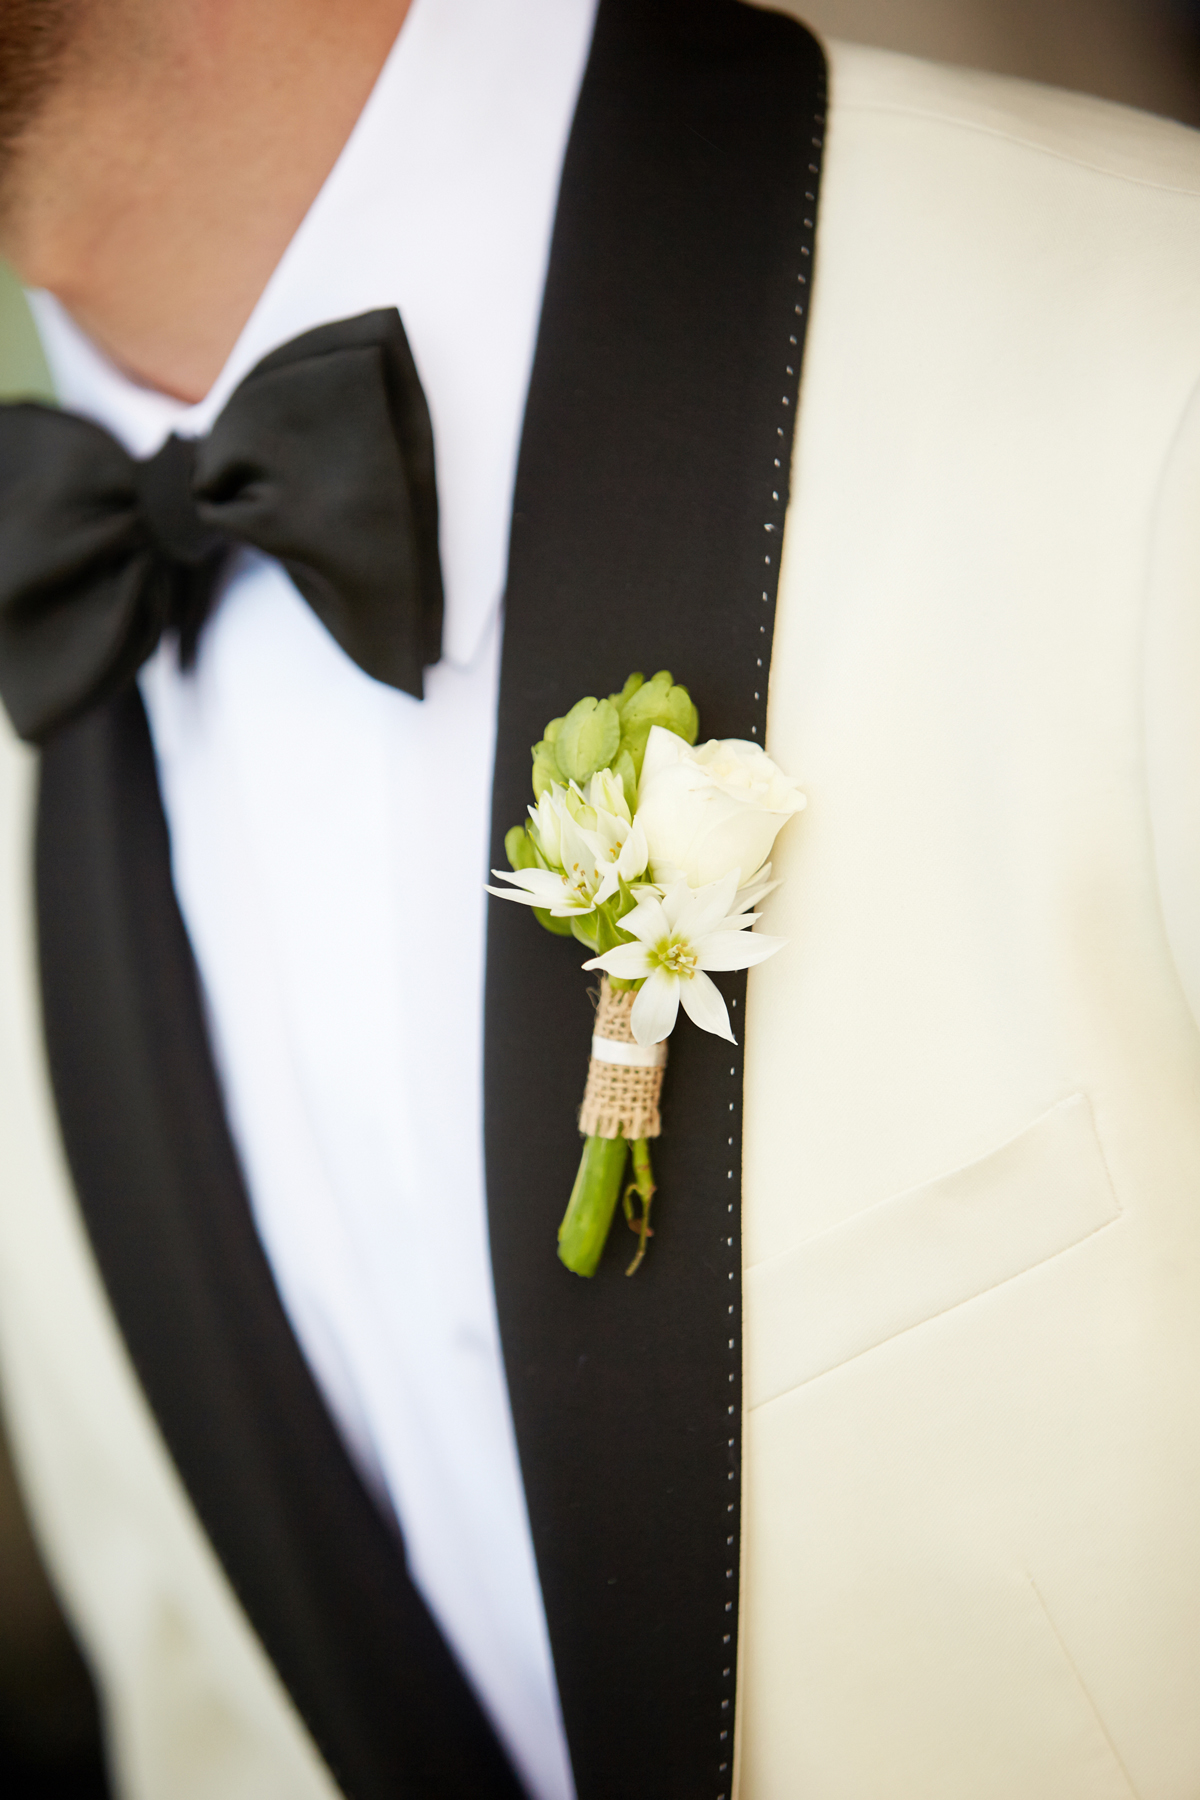 Pantone's 2017 Color of the Year greenery inspiration White tuxedo jacket white and green boutonniere with burlap